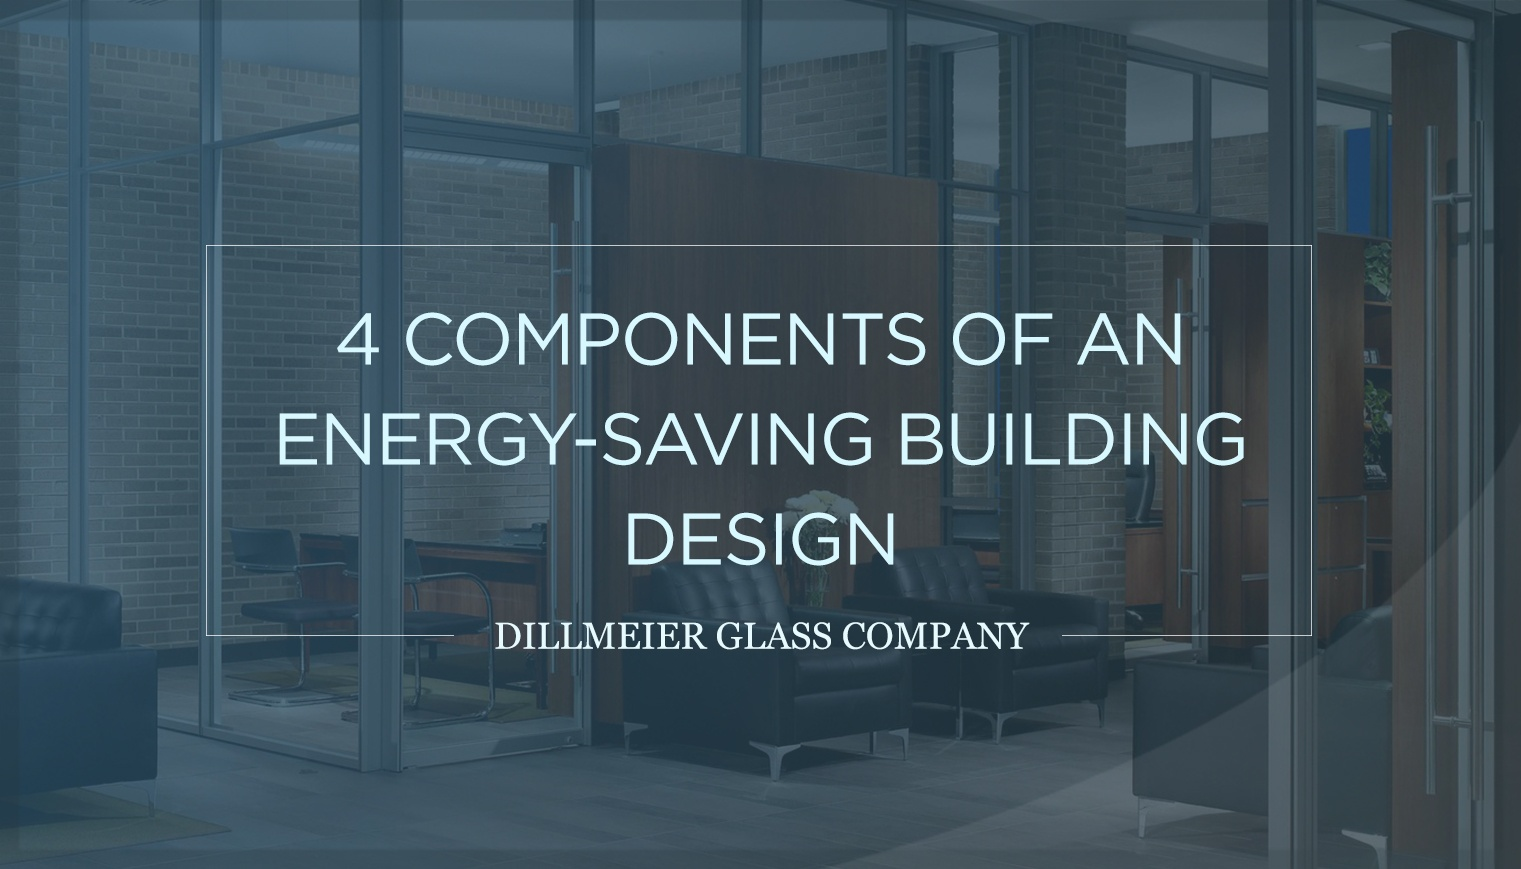 4 Components of an Energy-Saving Building Design